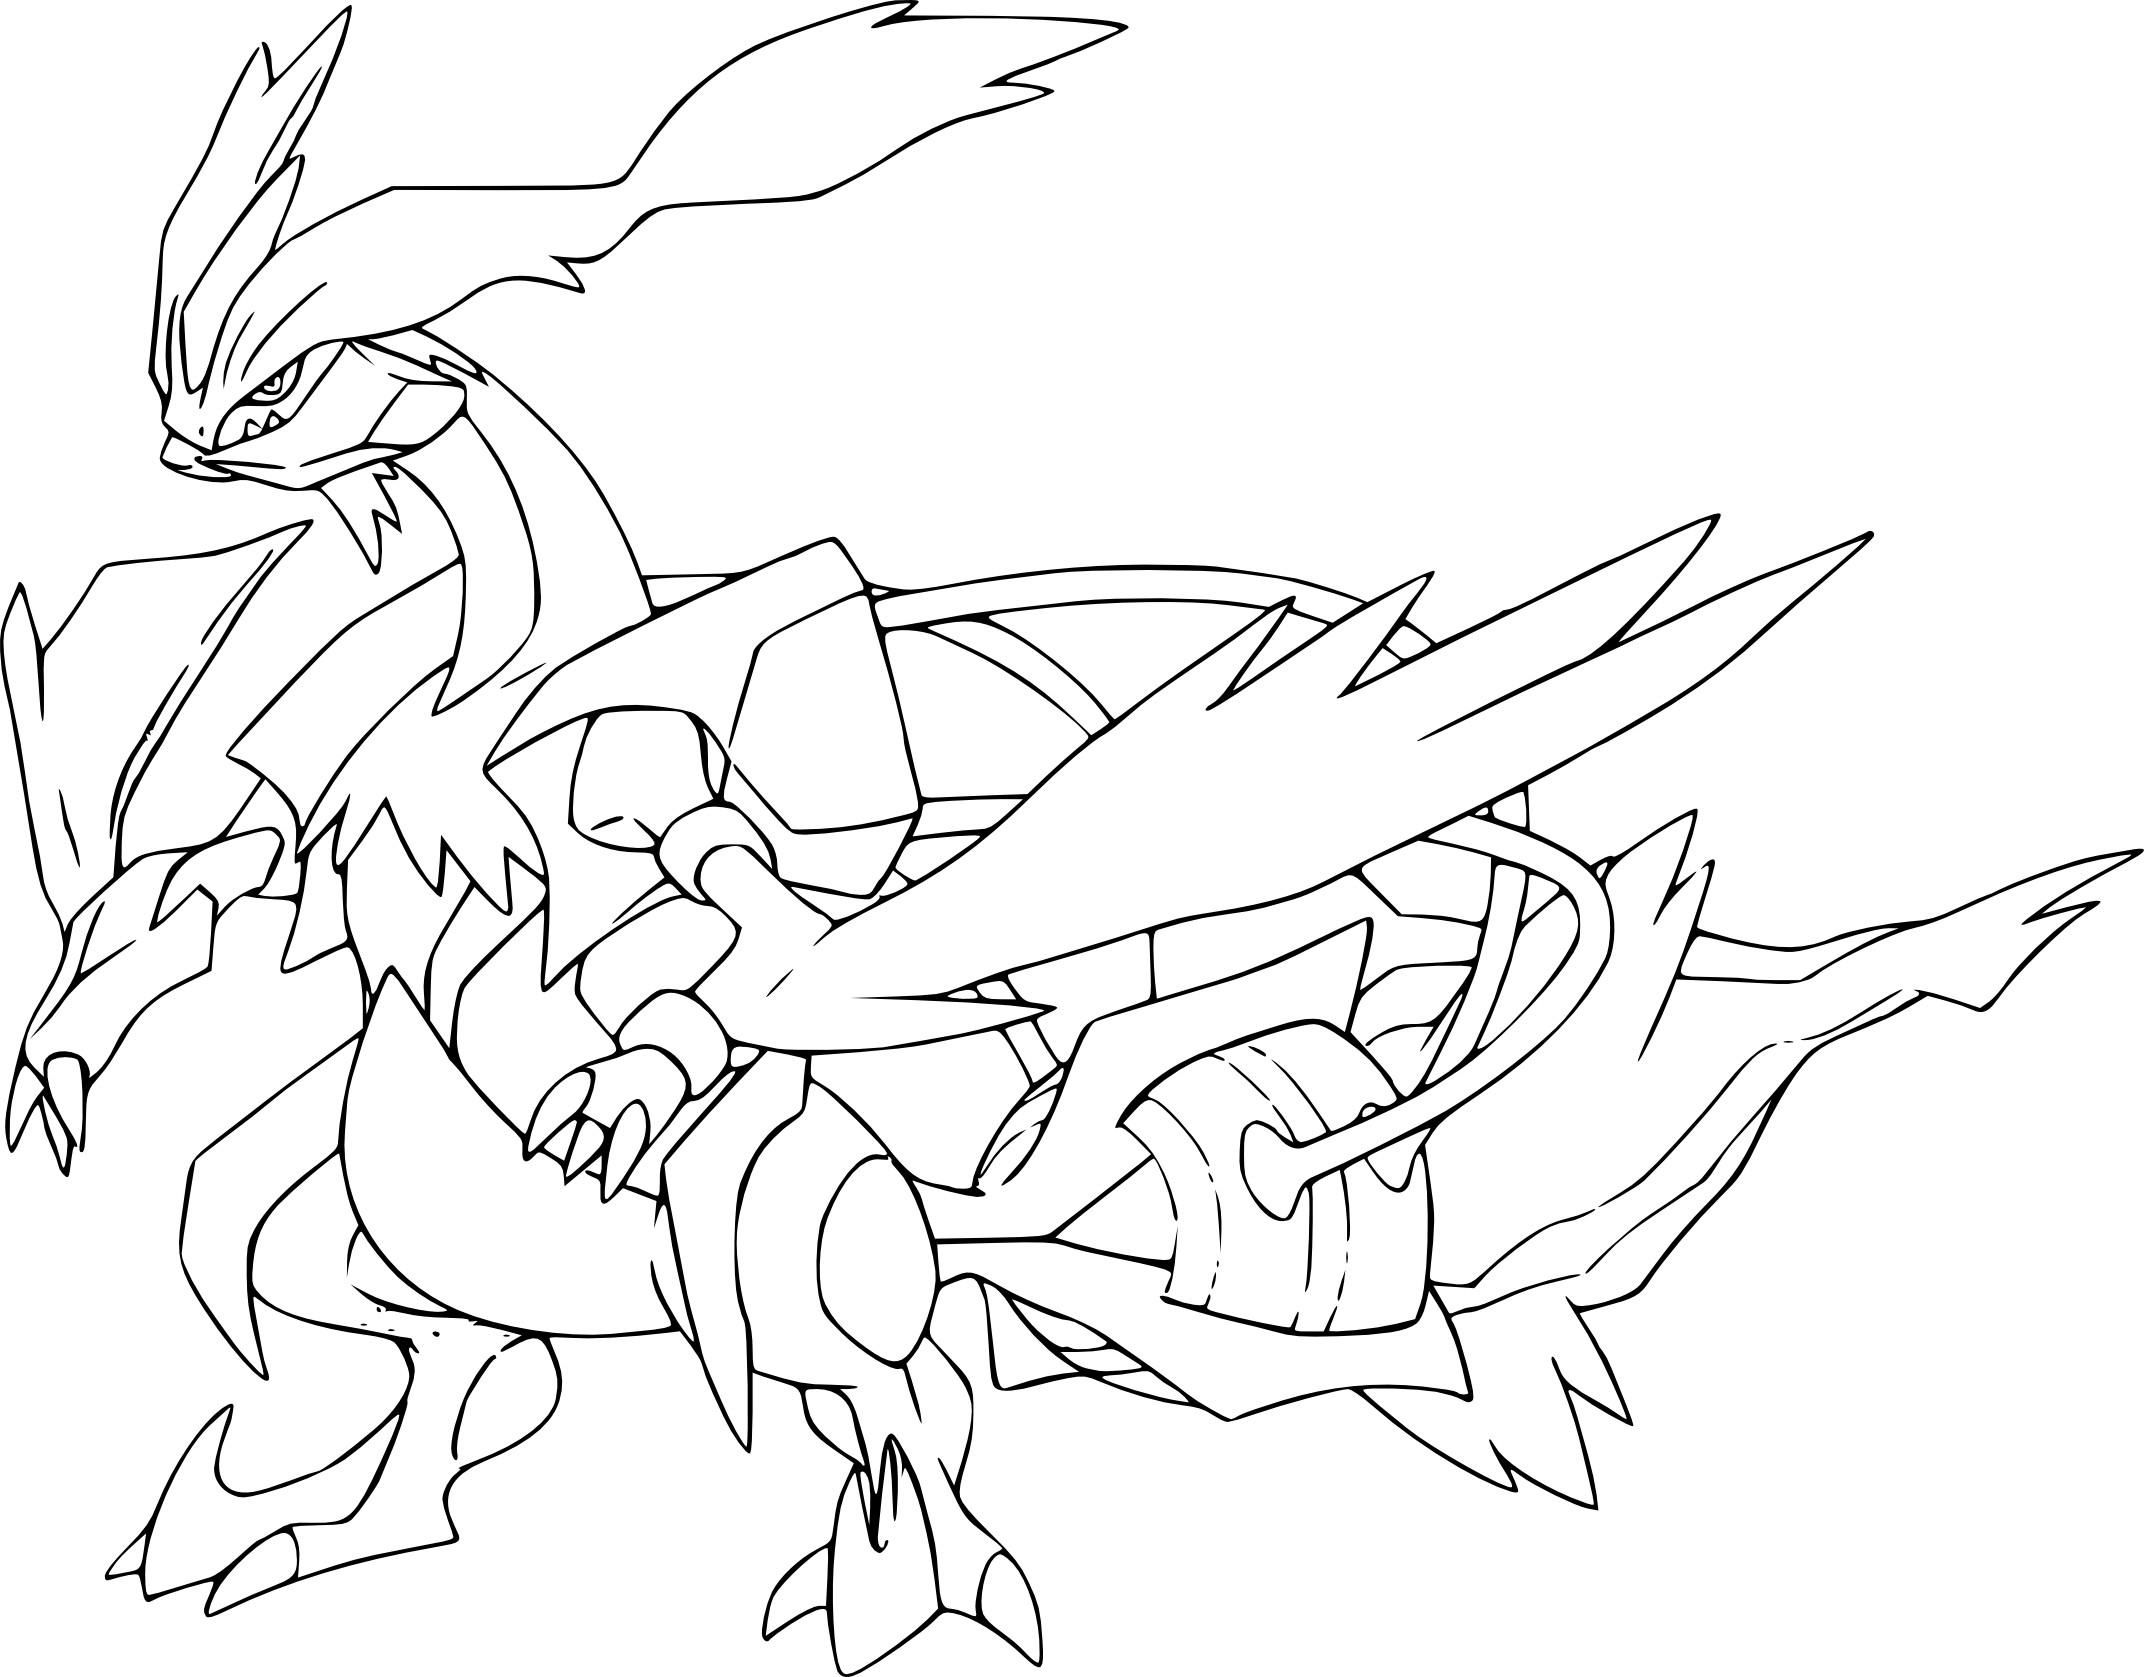 10 Coloriage A Imprimer Pokemon Zekrom Et Reshiram Coloring Pages Pokemon Coloring Pages Pokemon